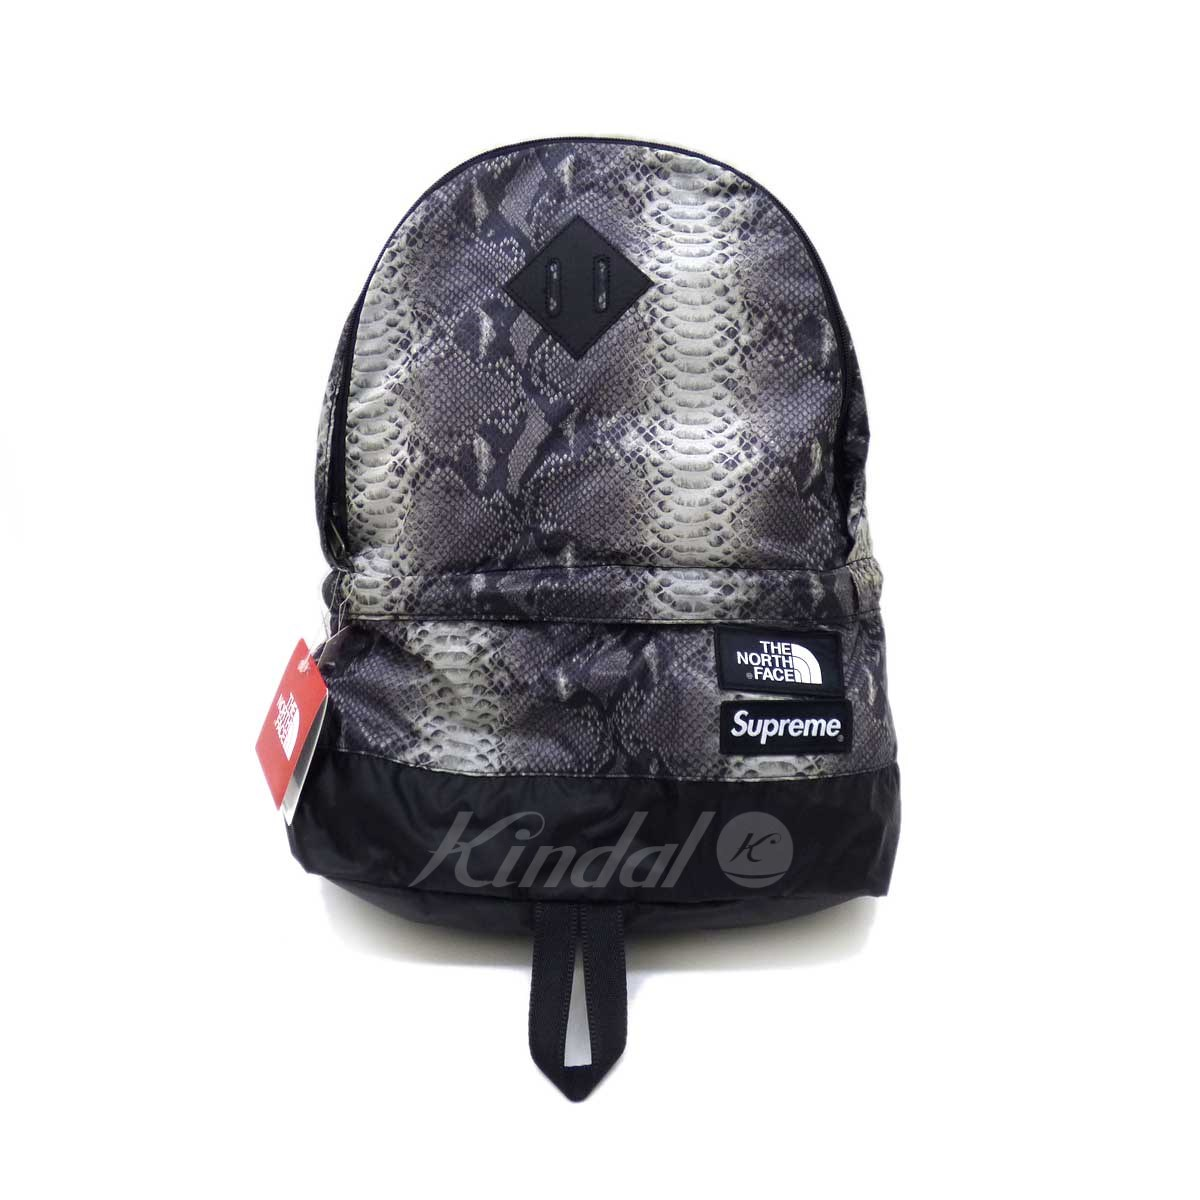 【中古】SUPREME×THE NORTH FACE Snale Lightweight Daypack バックパック 半タグ 【送料無料】 【078801】 【KIND1550】